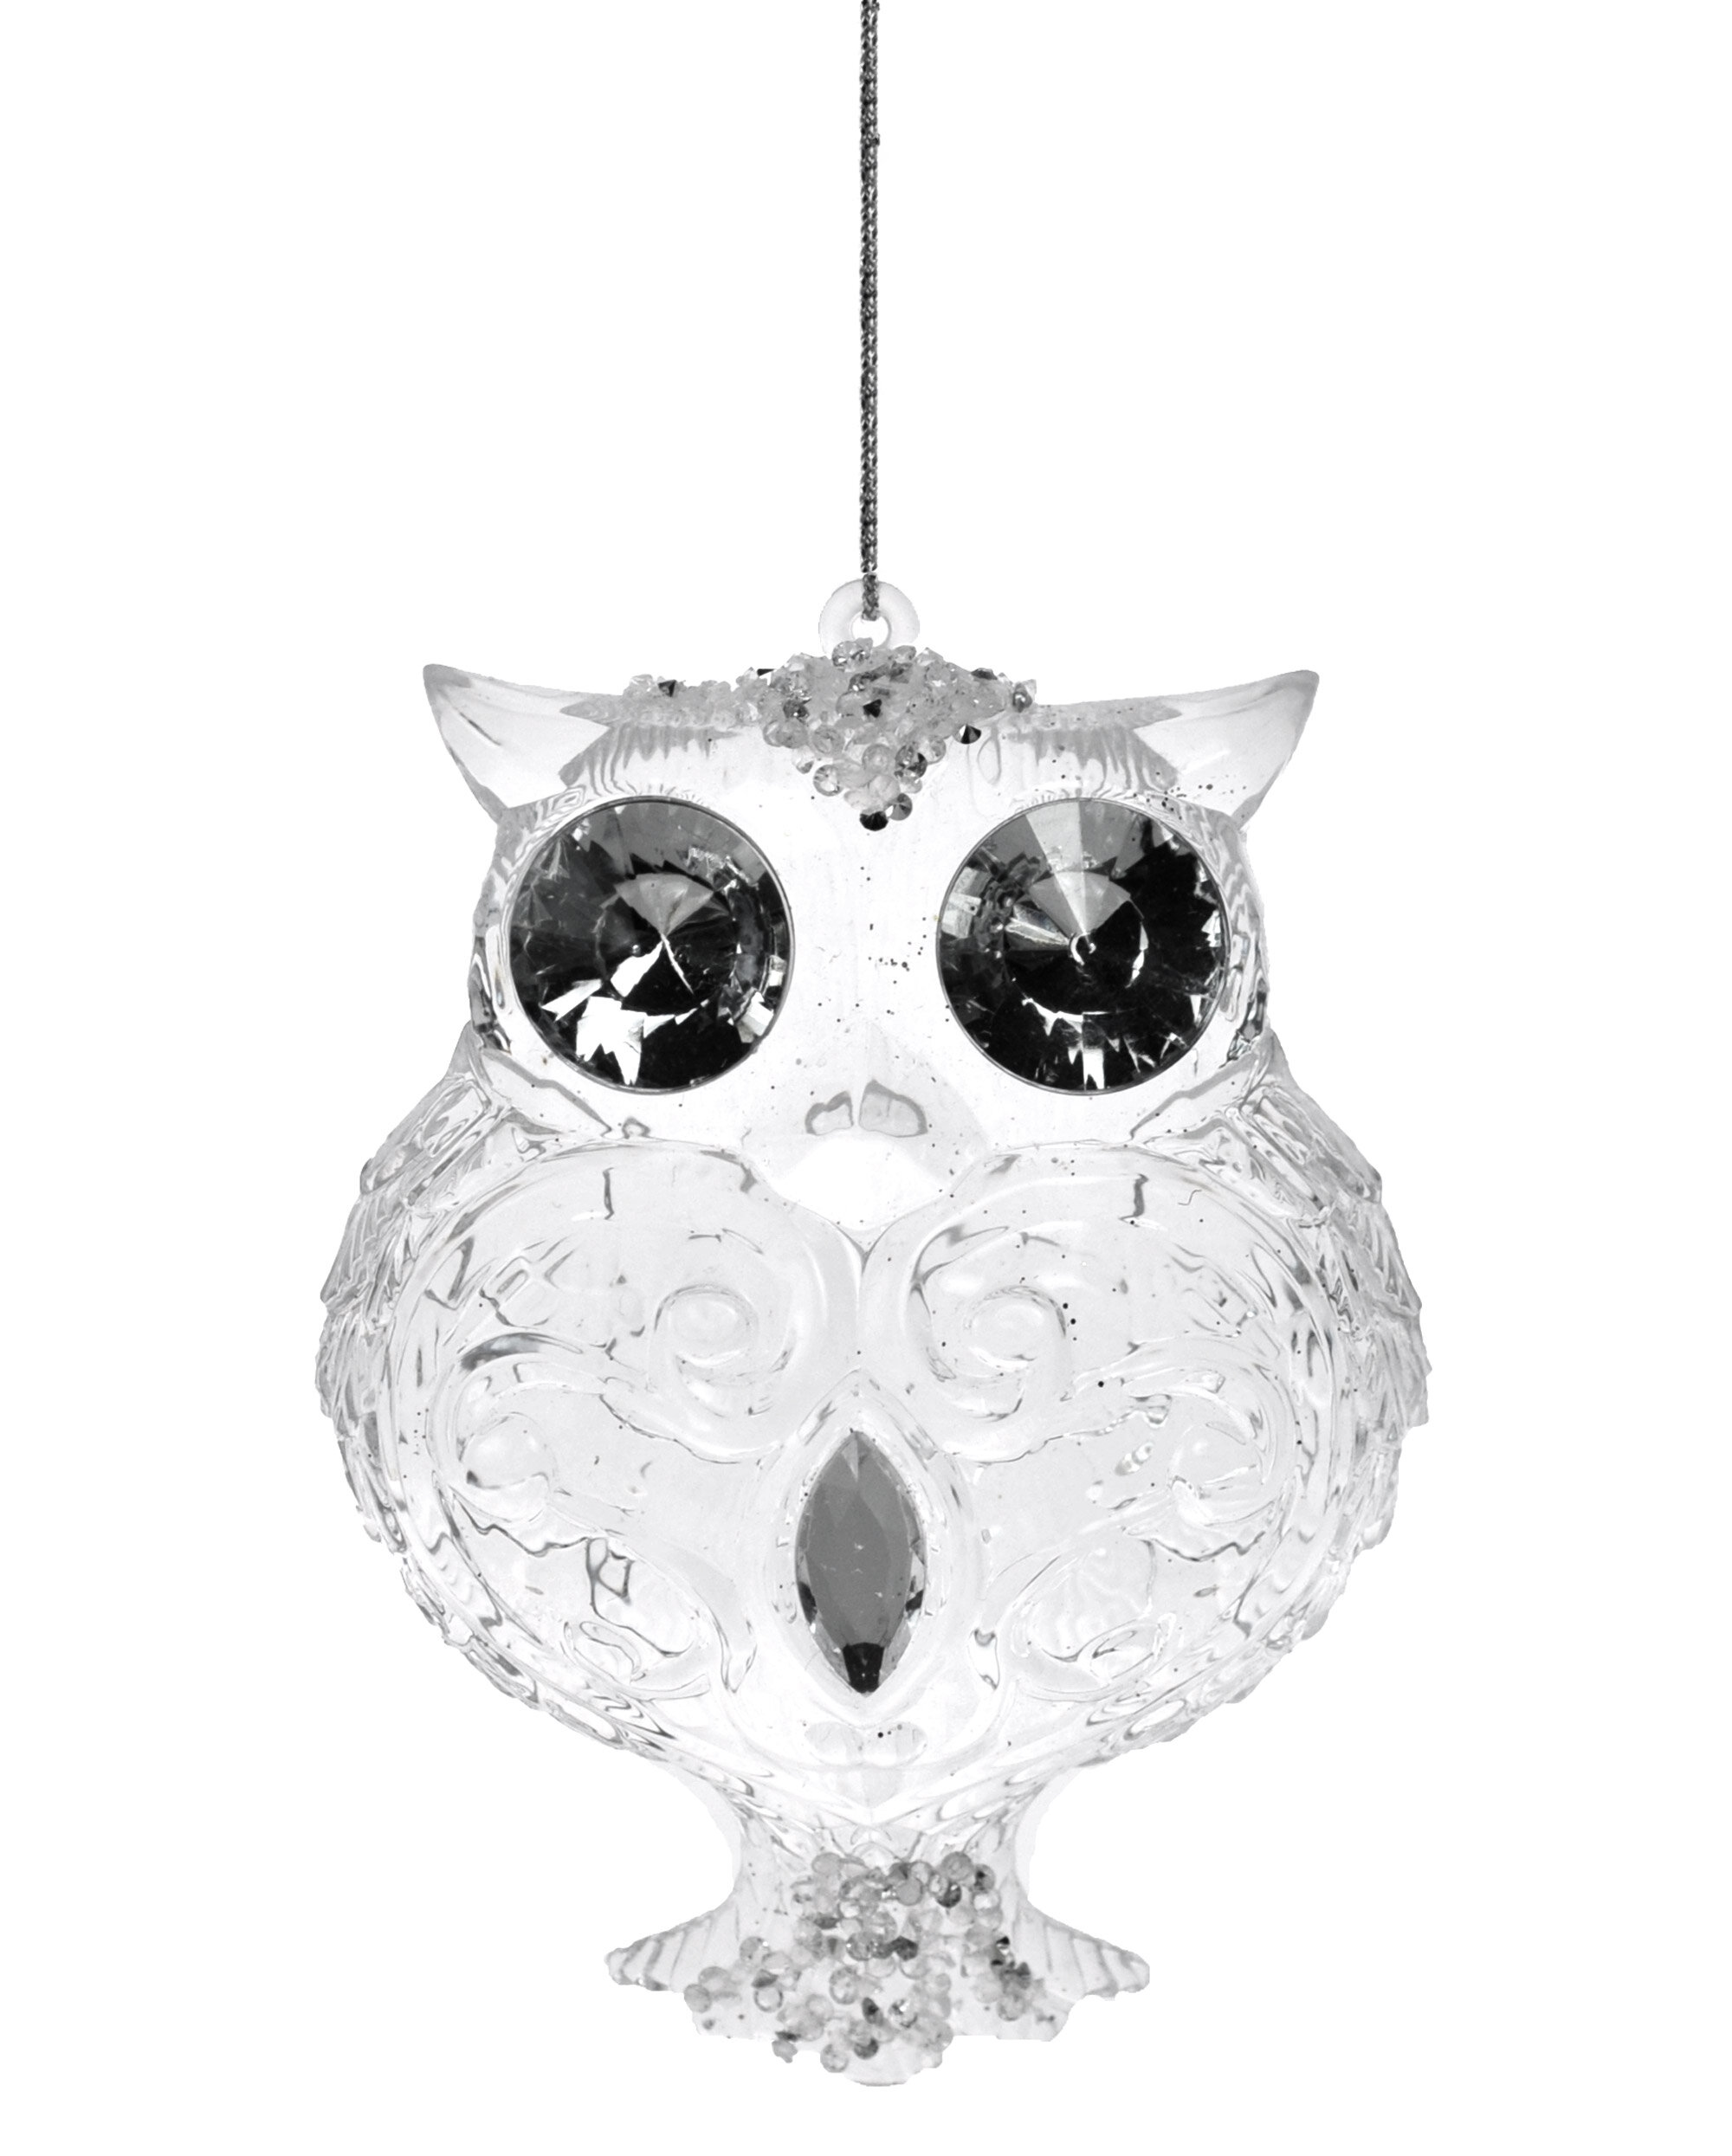 The Holiday Aisle Glass Curl Design Owl Hanging Figurine Ornament Wayfair